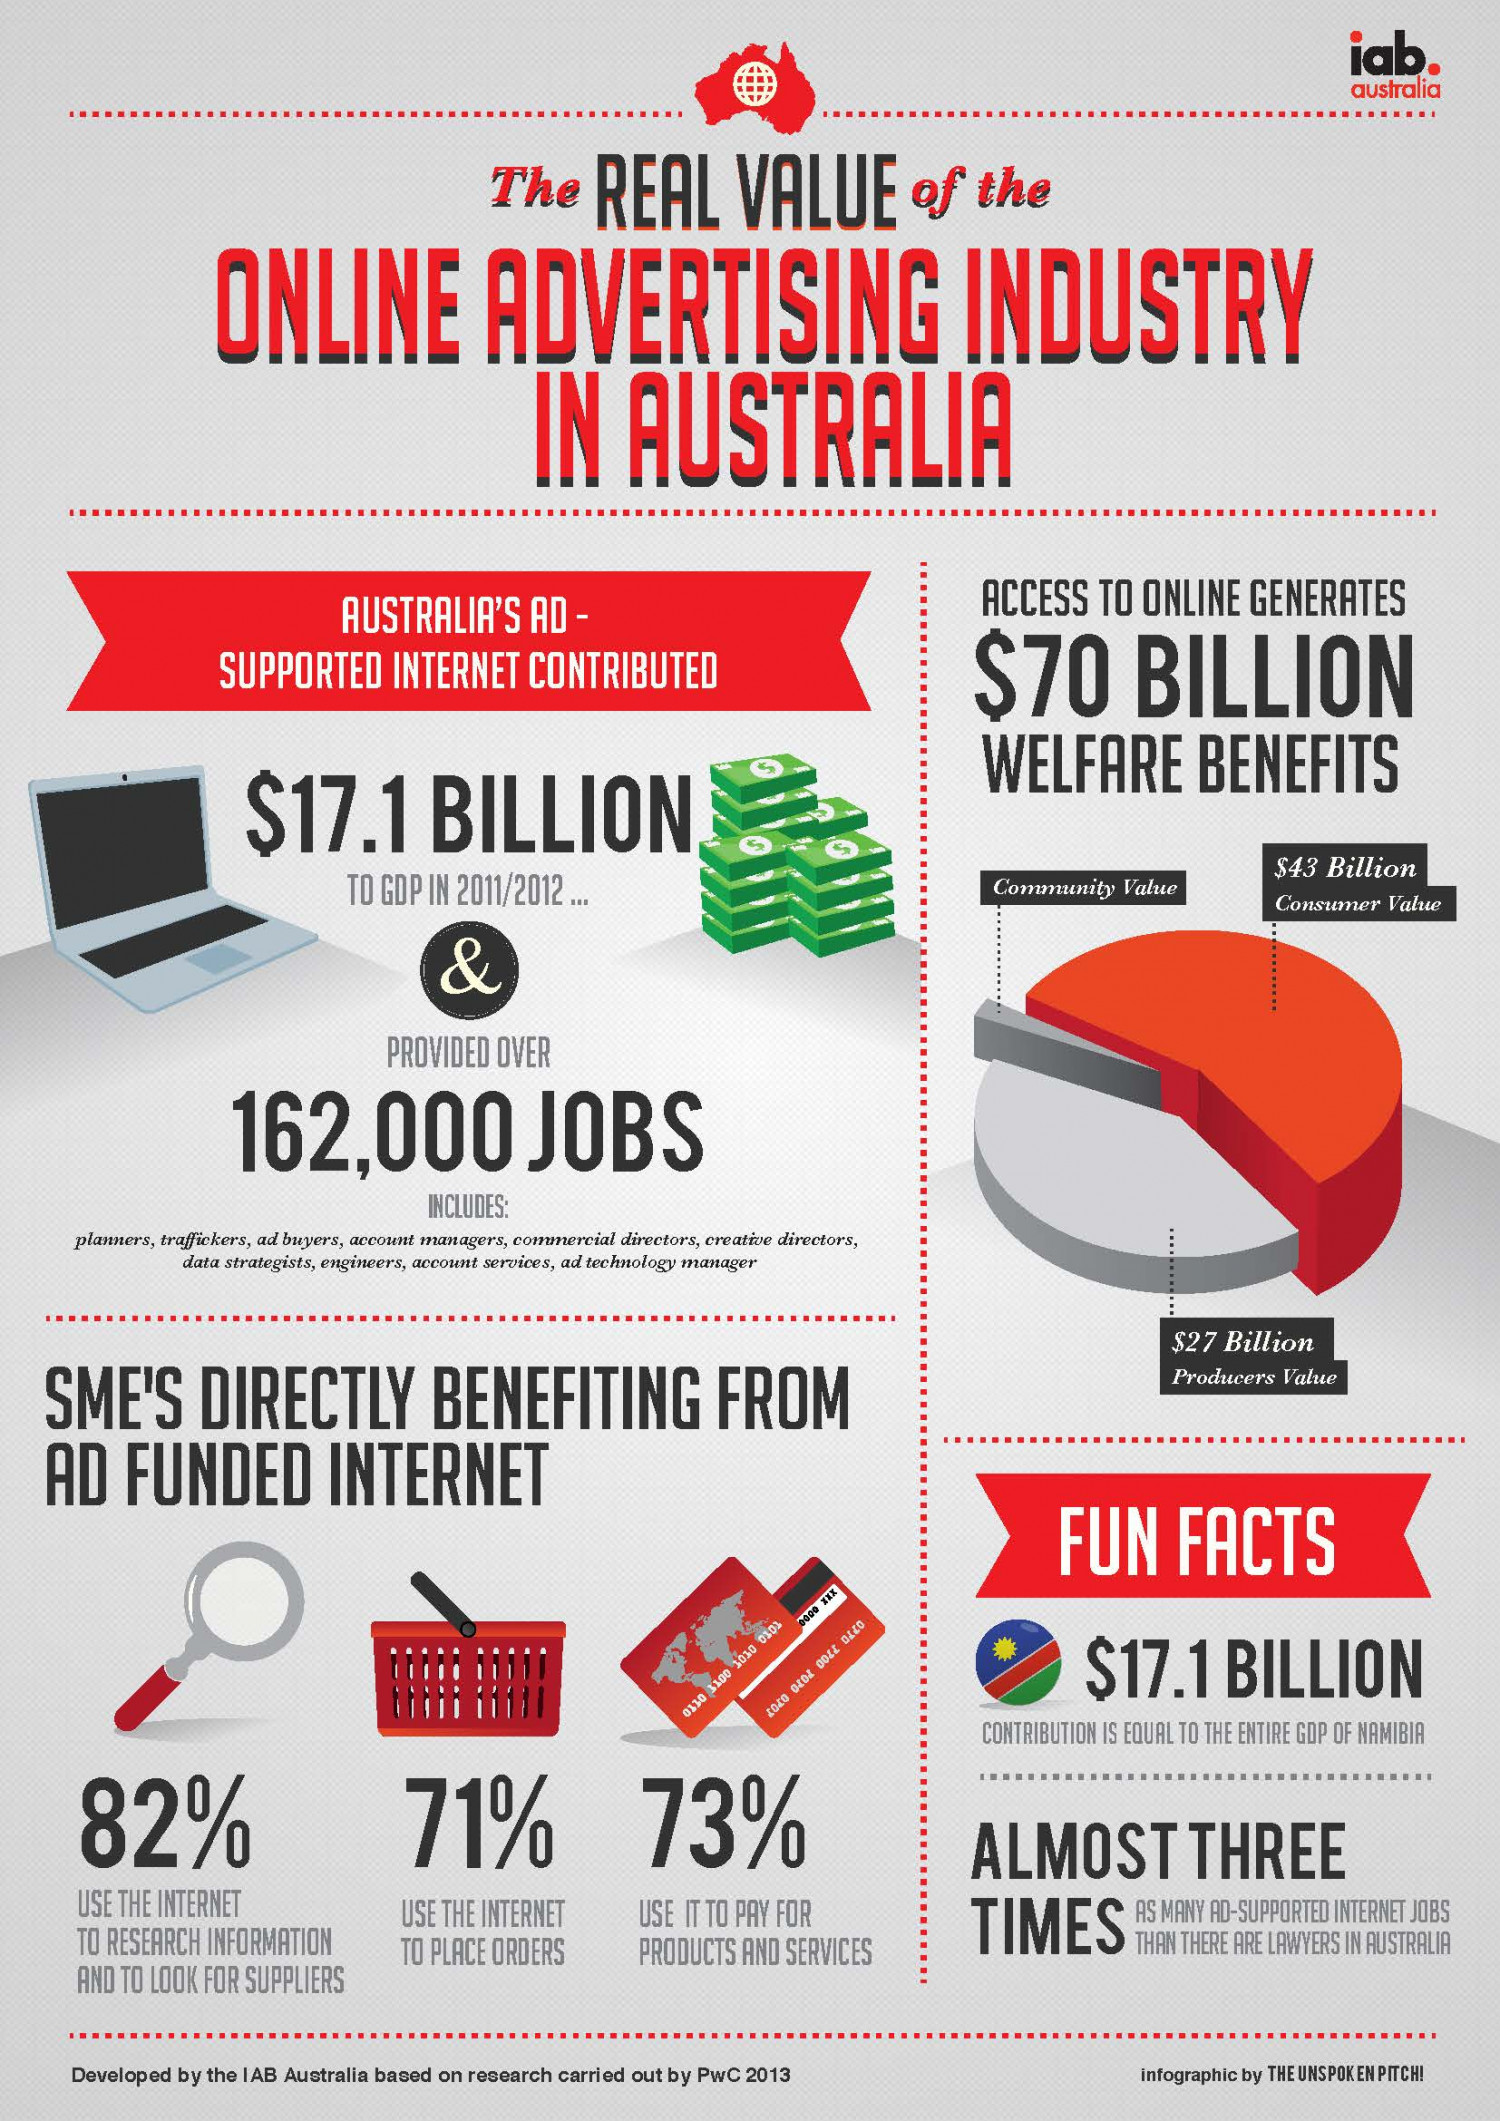 Online Advertusubg Industry in Australia Infographic